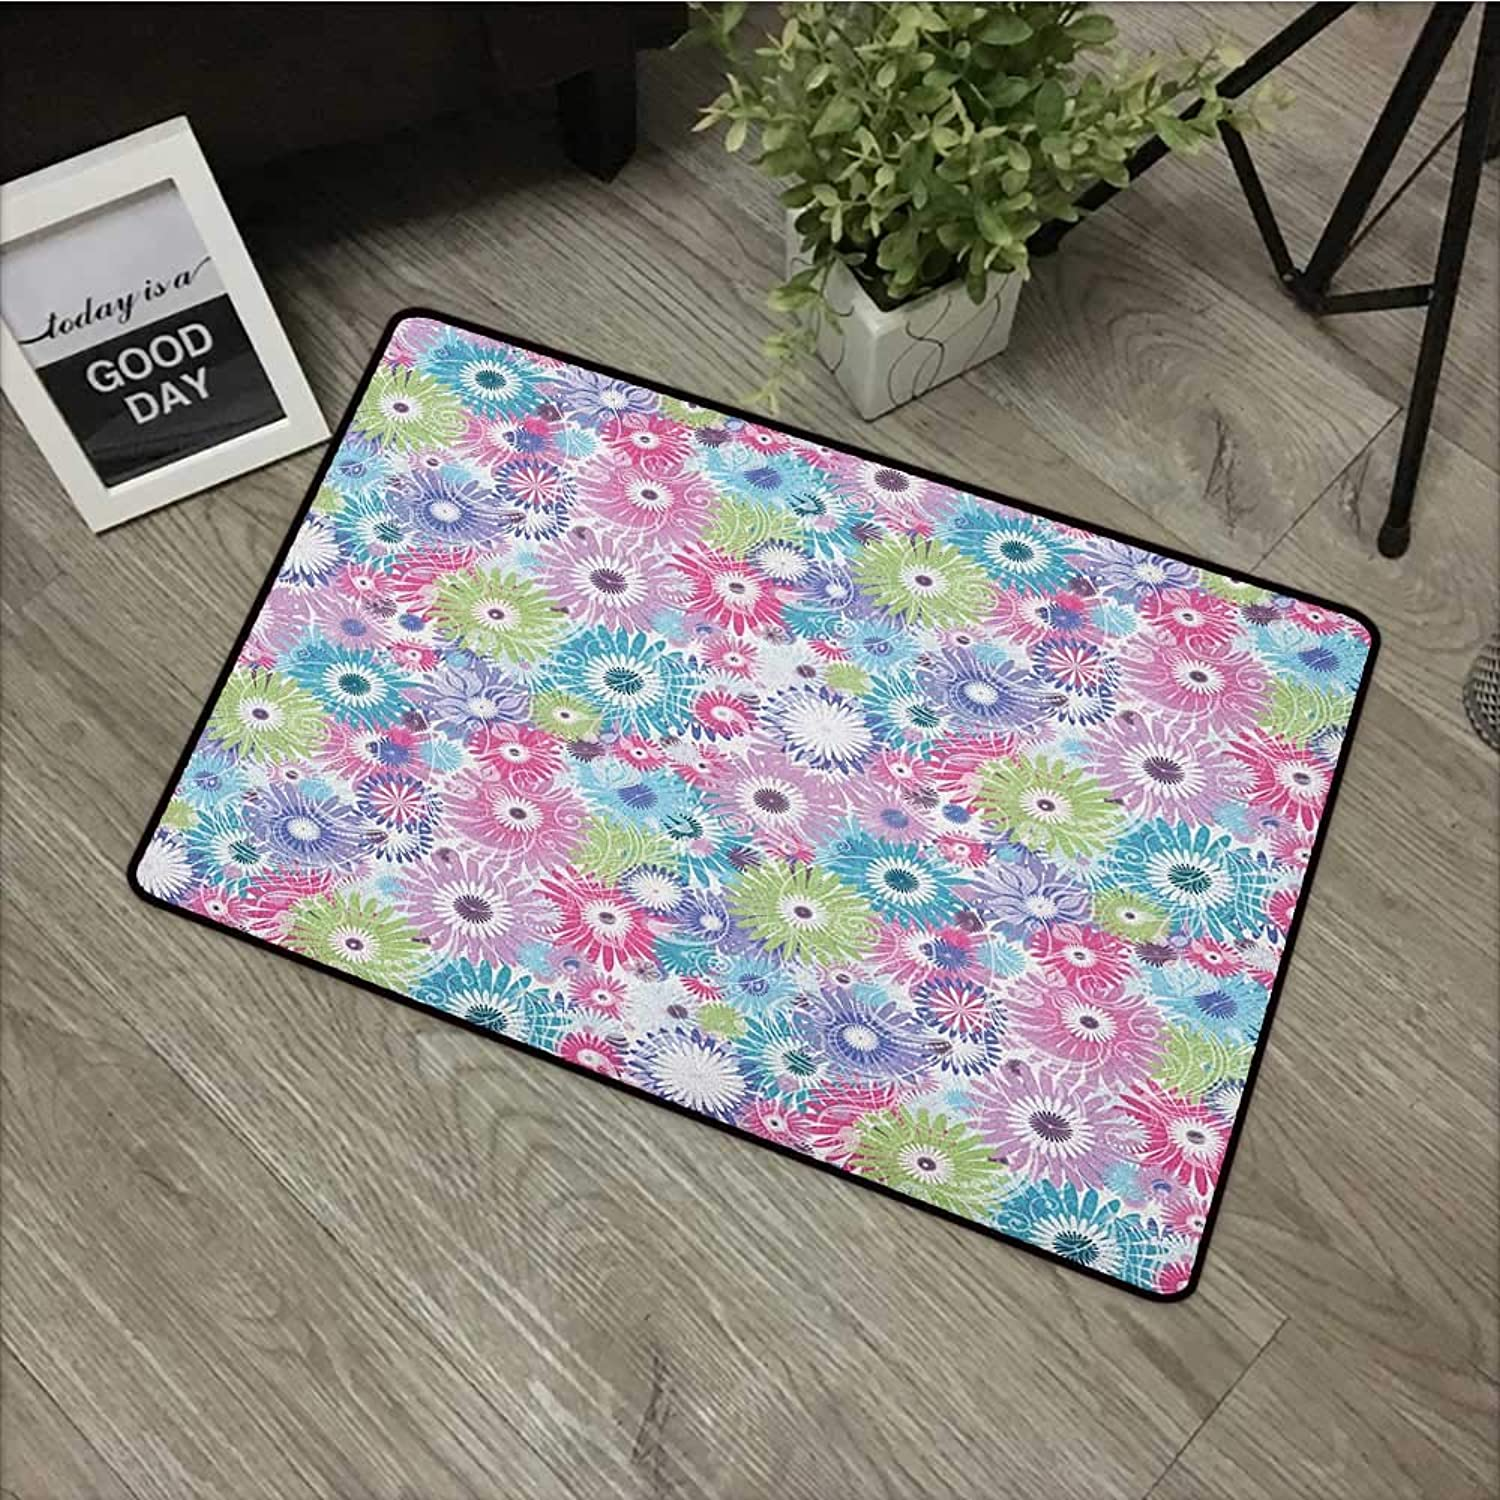 Bathroom Door mat W35 x L59 INCH Floral,colorful Pastel Pattern with Flowers and Vintage Curls Ornate Style Gerbera Daisies, Multicolor Non-Slip, with Non-Slip Backing,Non-Slip Door Mat Carpet